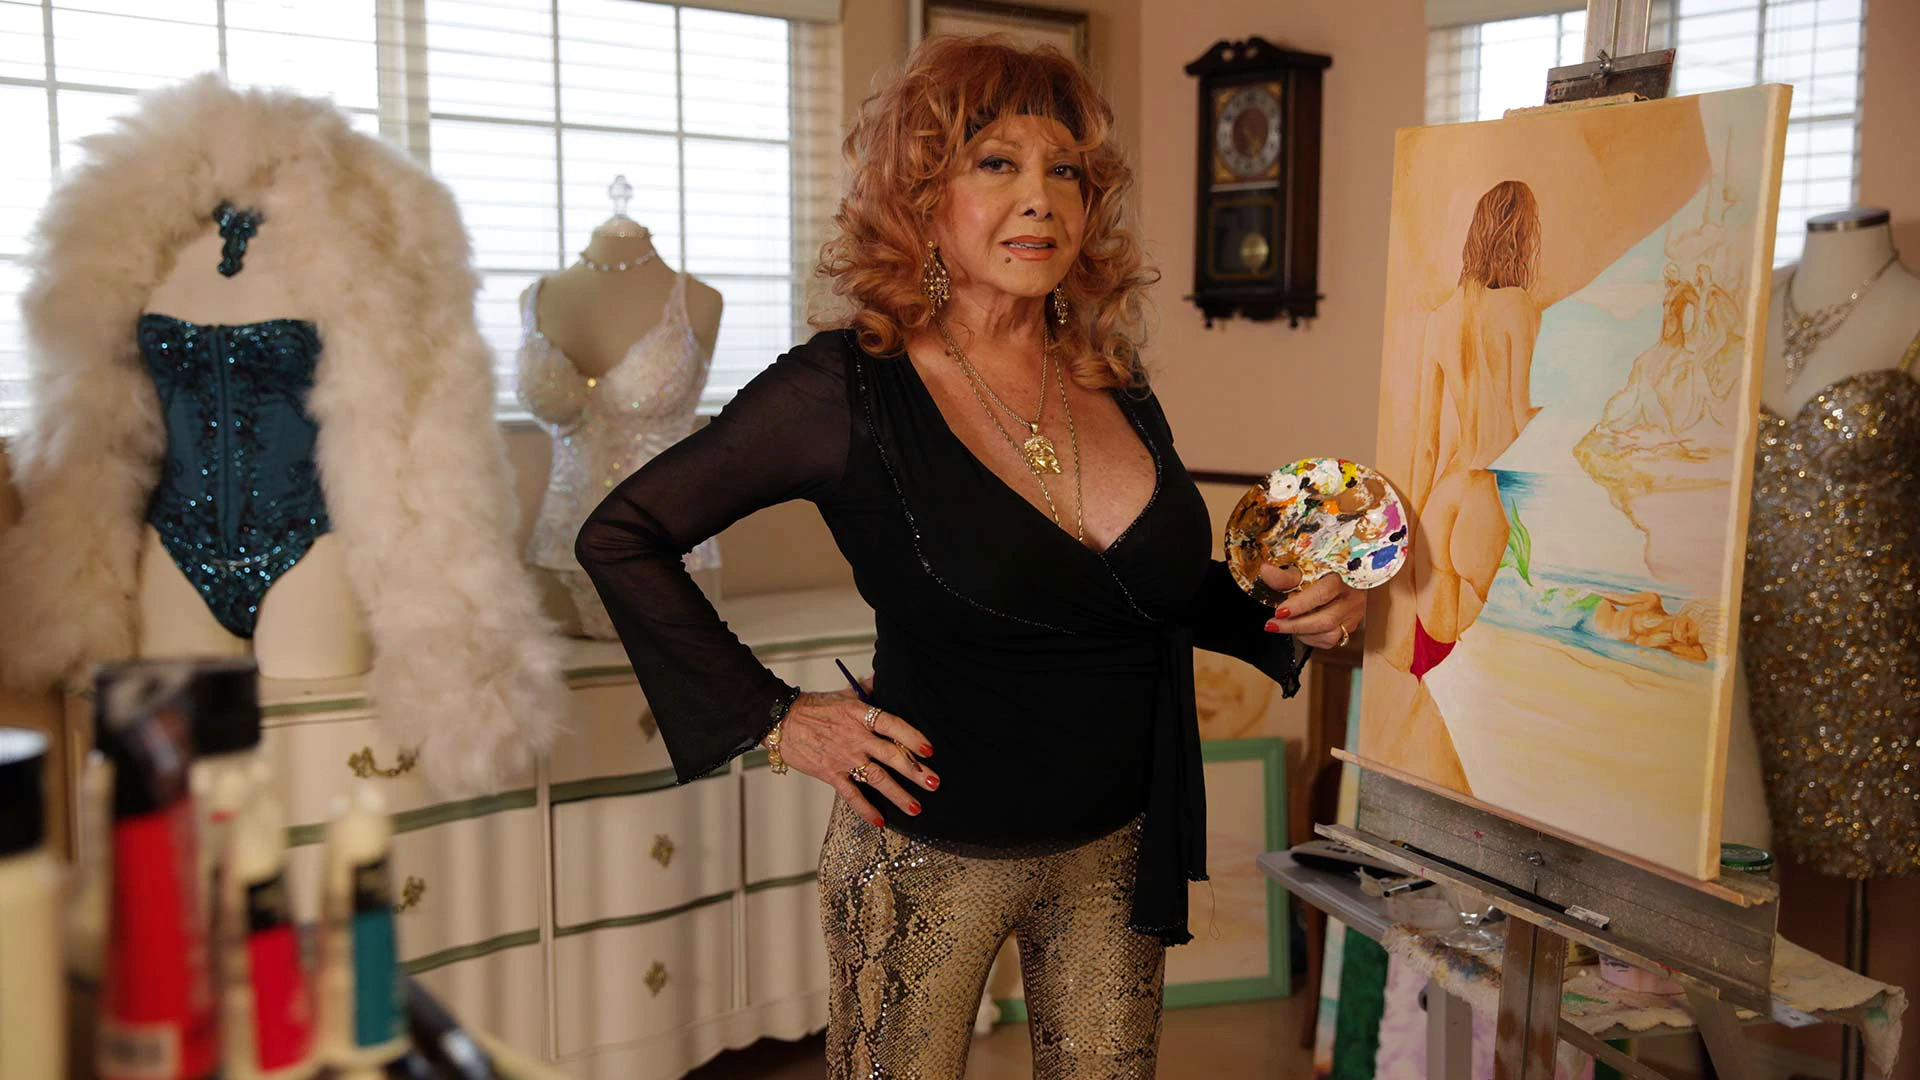 A burlesque star poses in the documentary League Of ExotiqueDancers